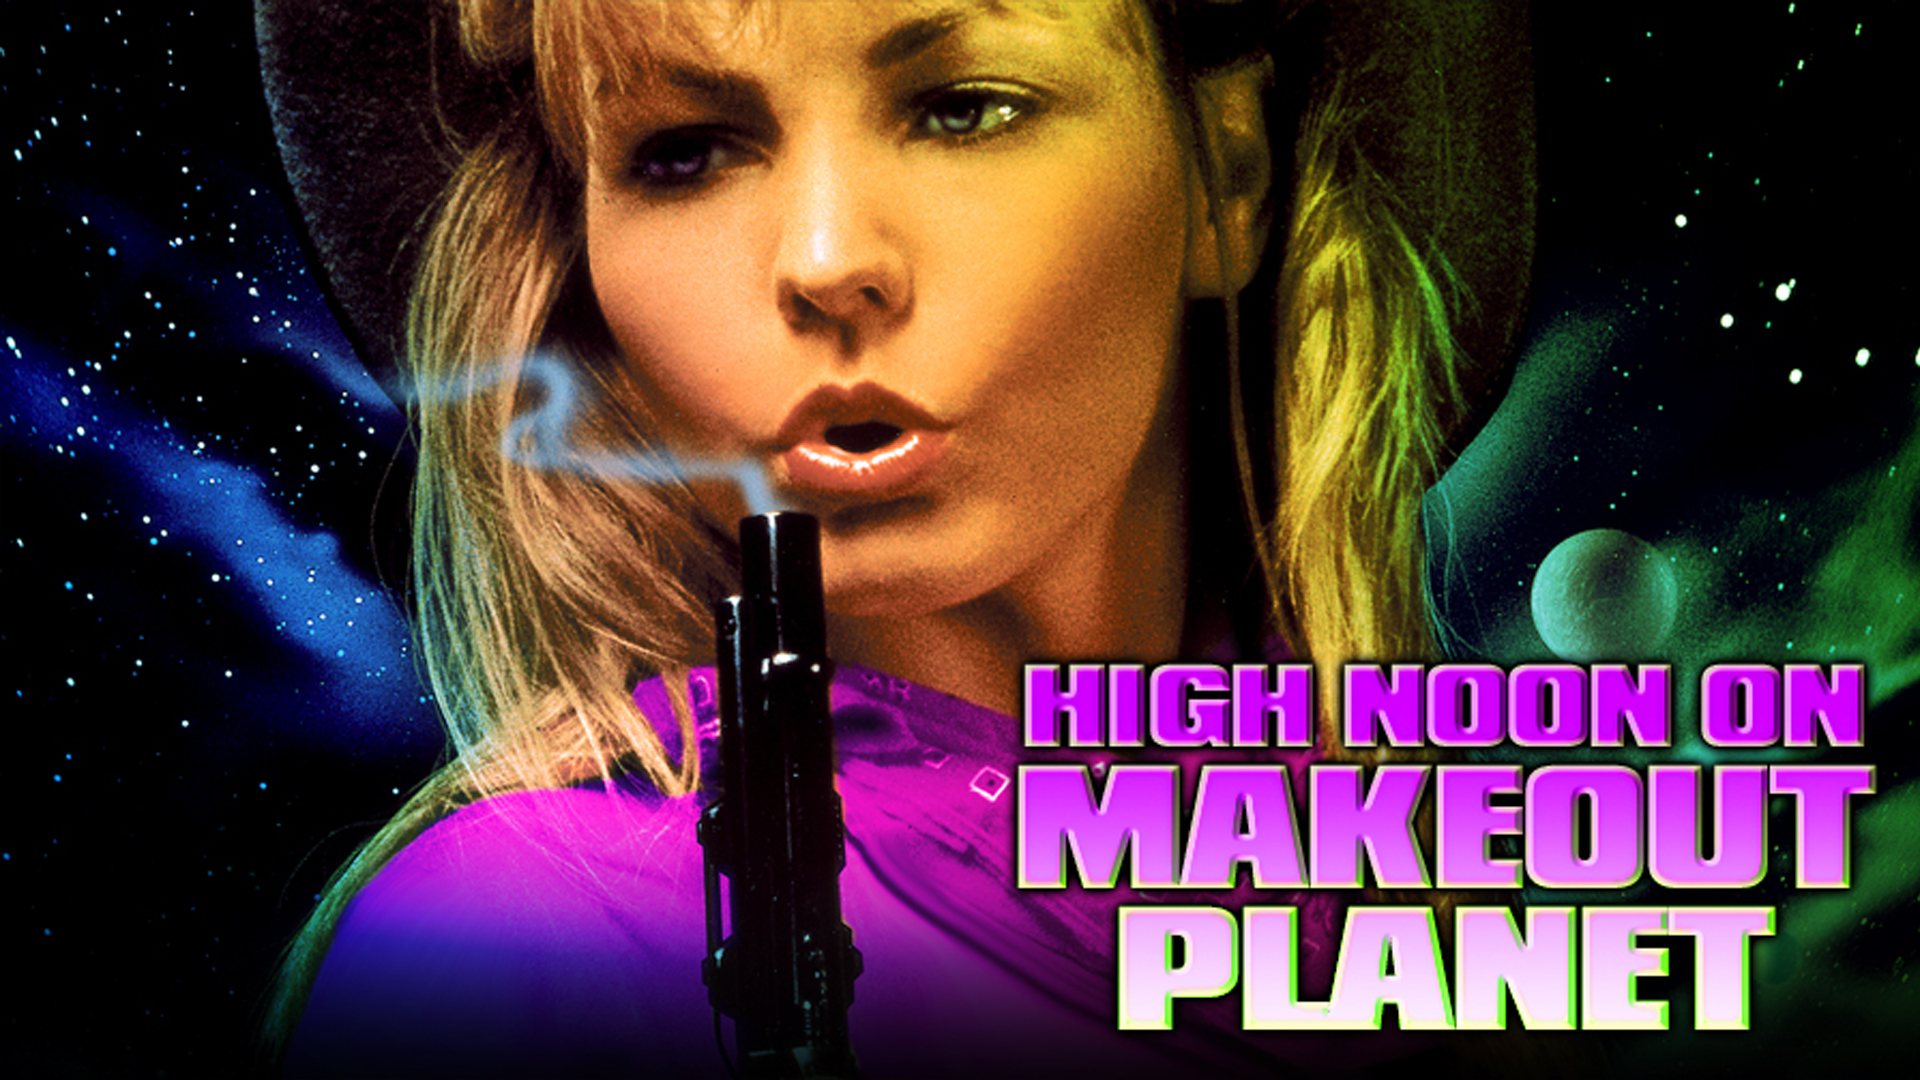 High Noon On Makeout Planet